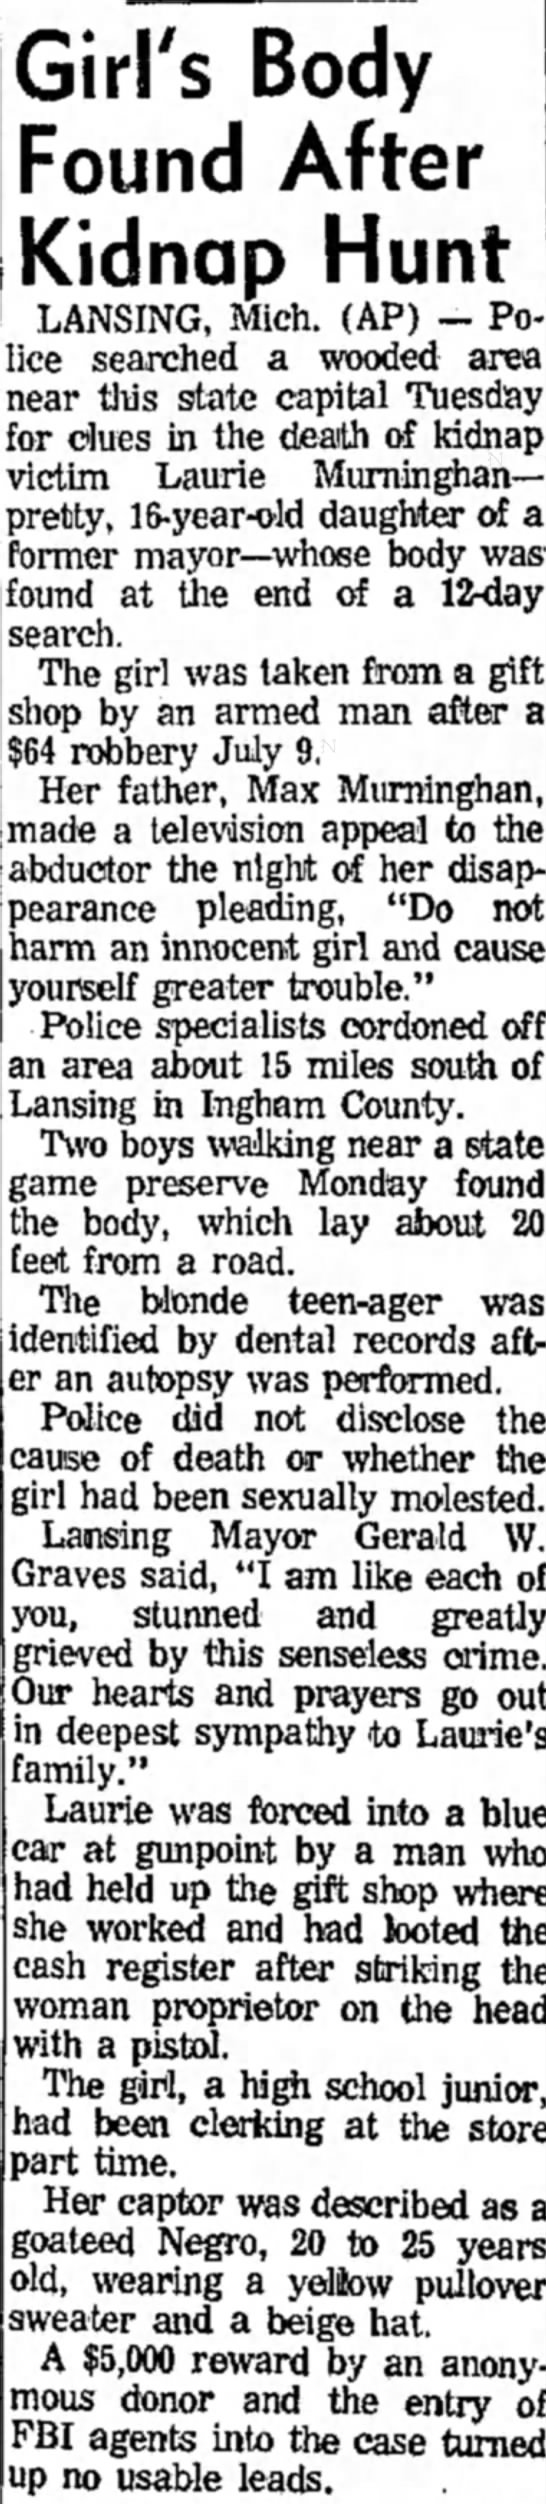 Mexico Ledger - Tues 7-21-70 - Girl's Body Found After Kidnap Hunt LANSING,...